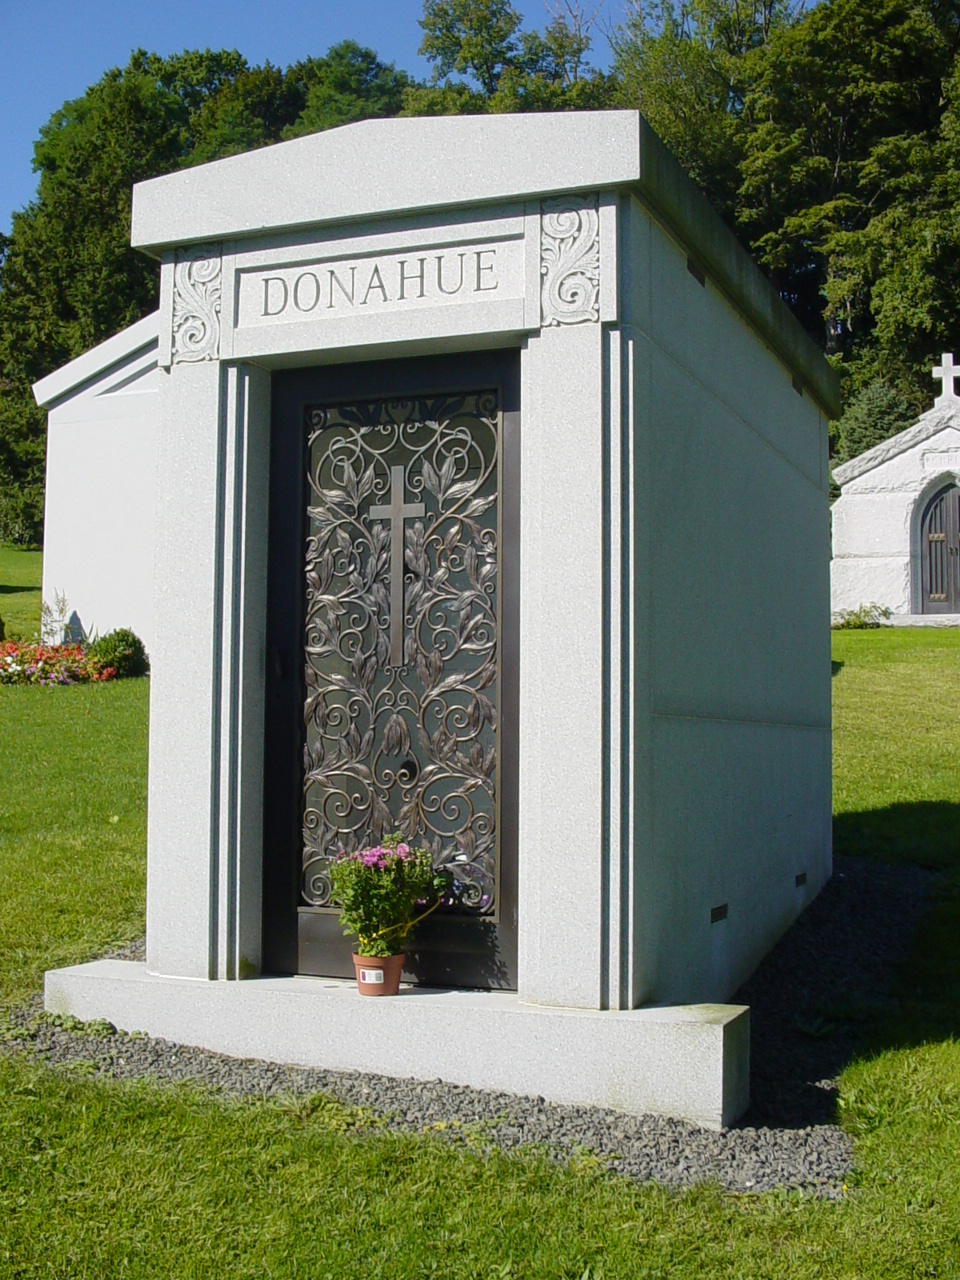 Polchinski Memorials Greenwich CT - Donahue Featured Memorials